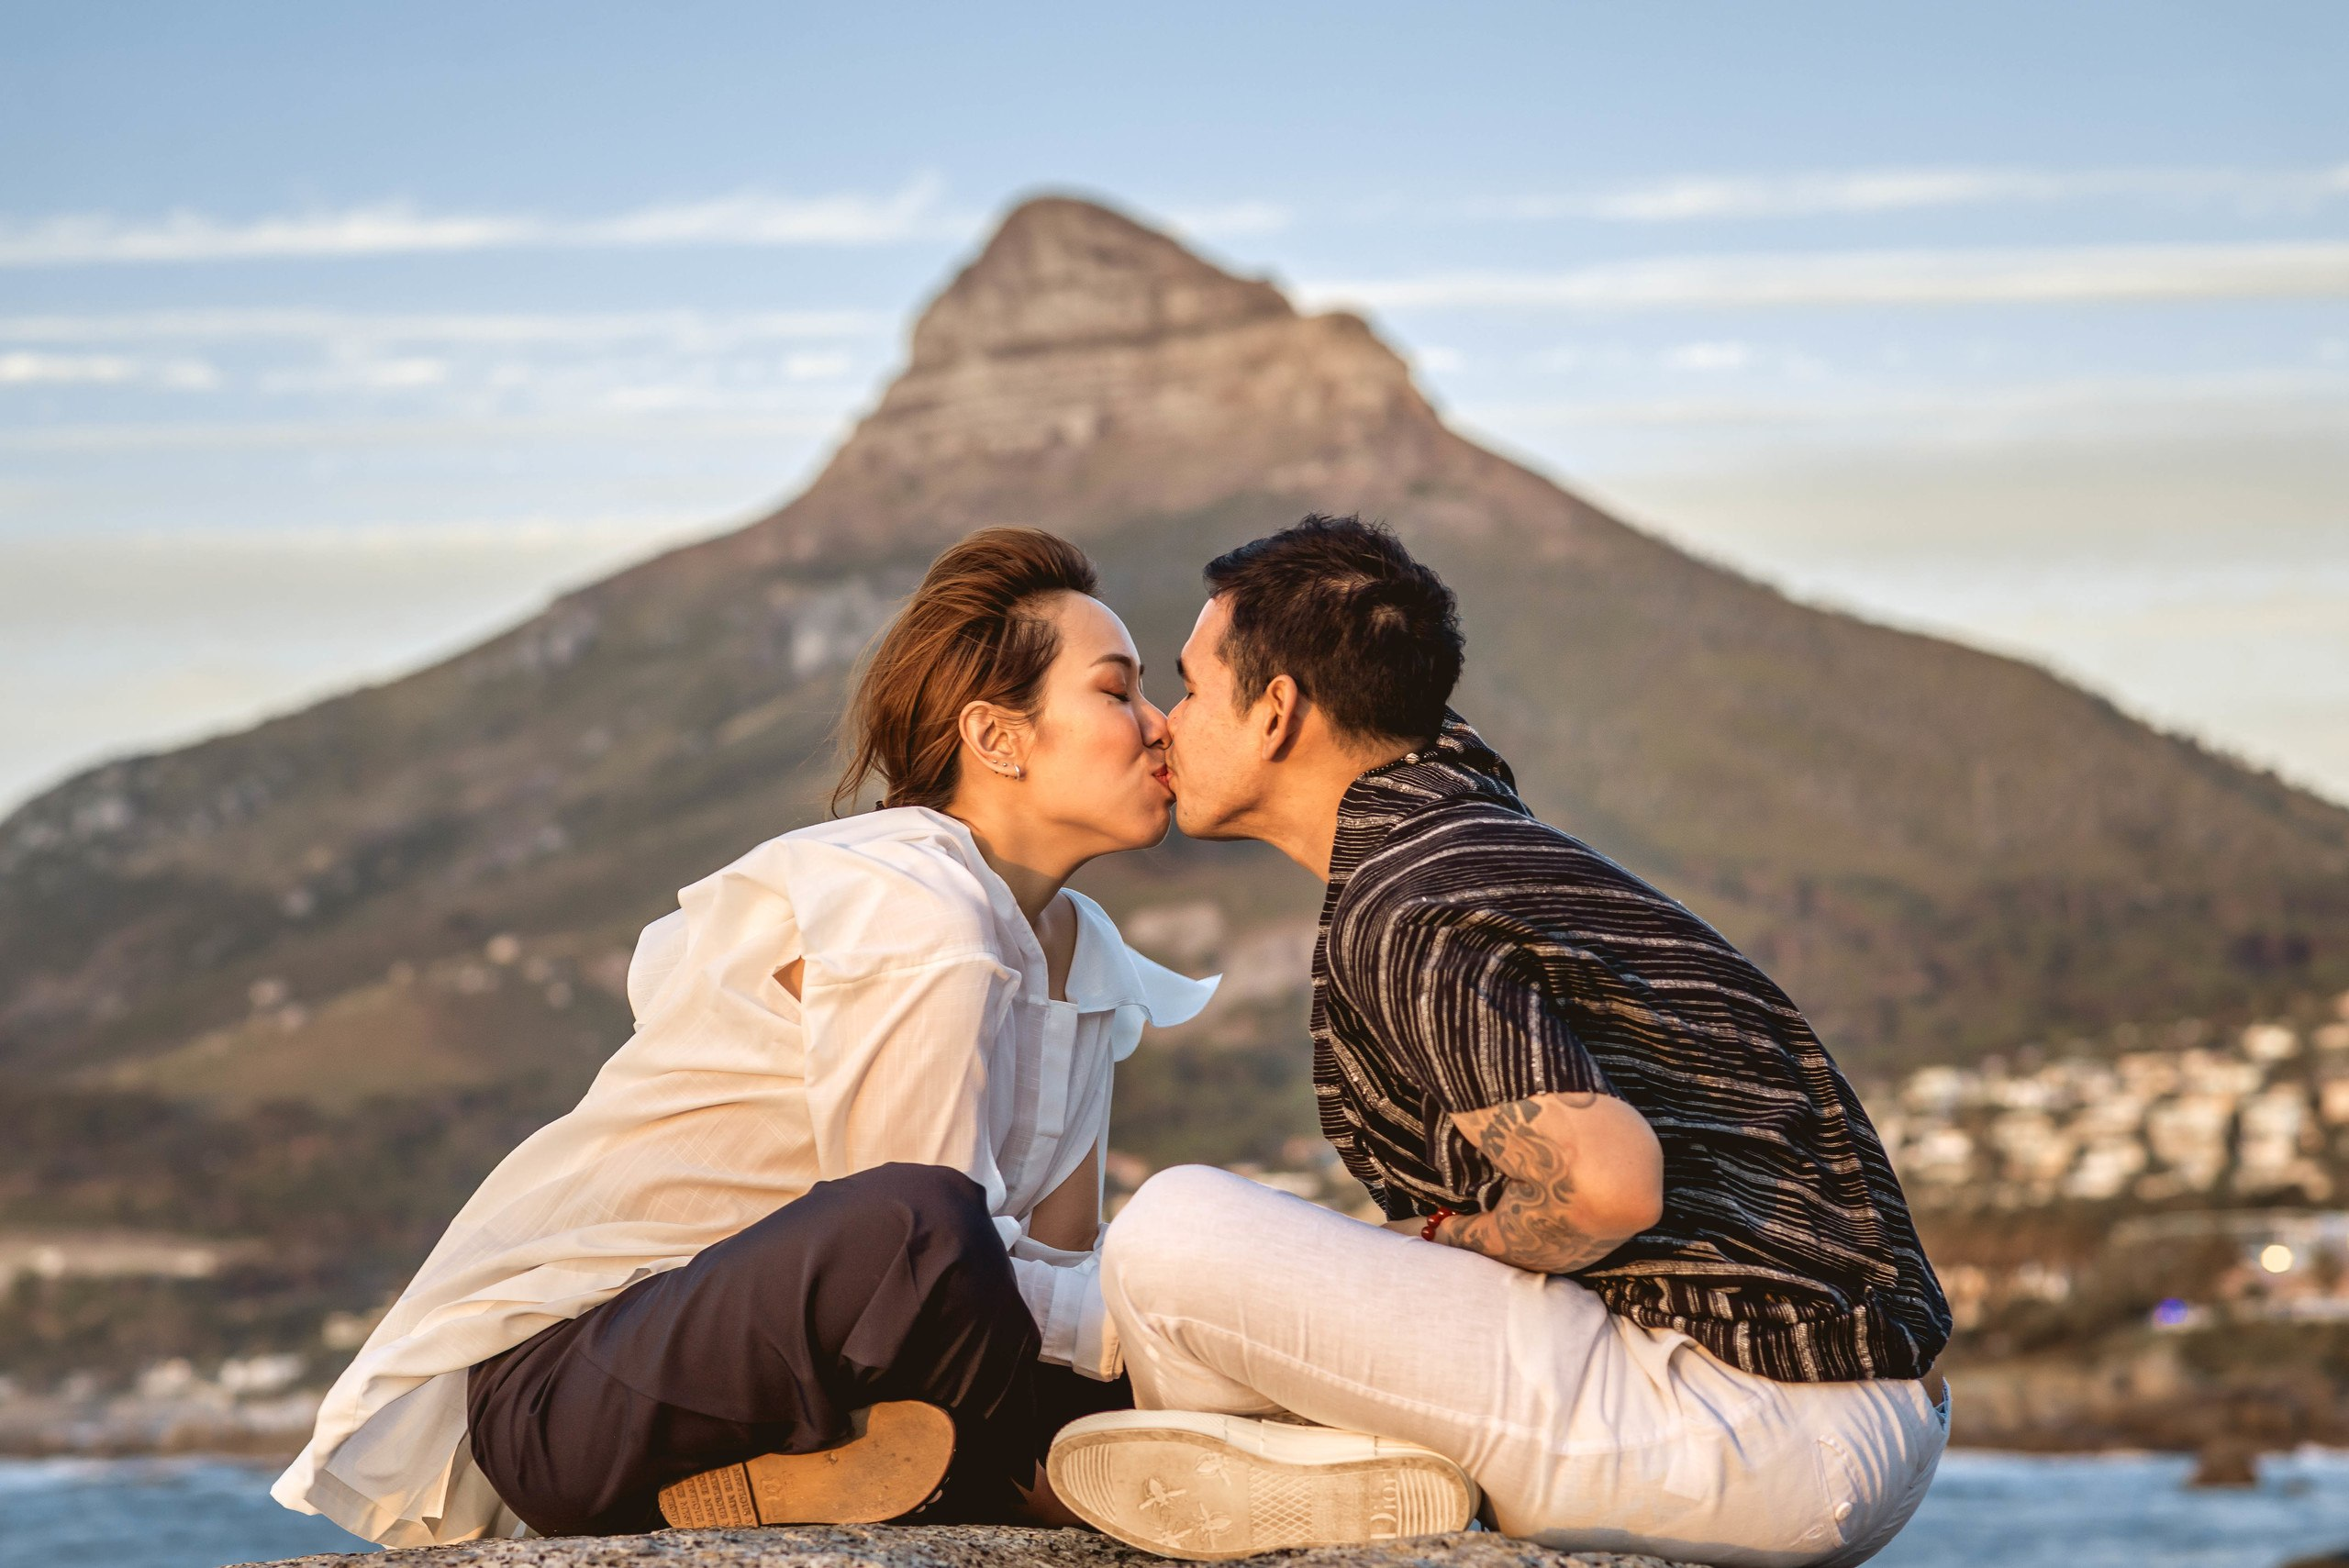 Cape Town couple Honeymoon Vacation photo shoot